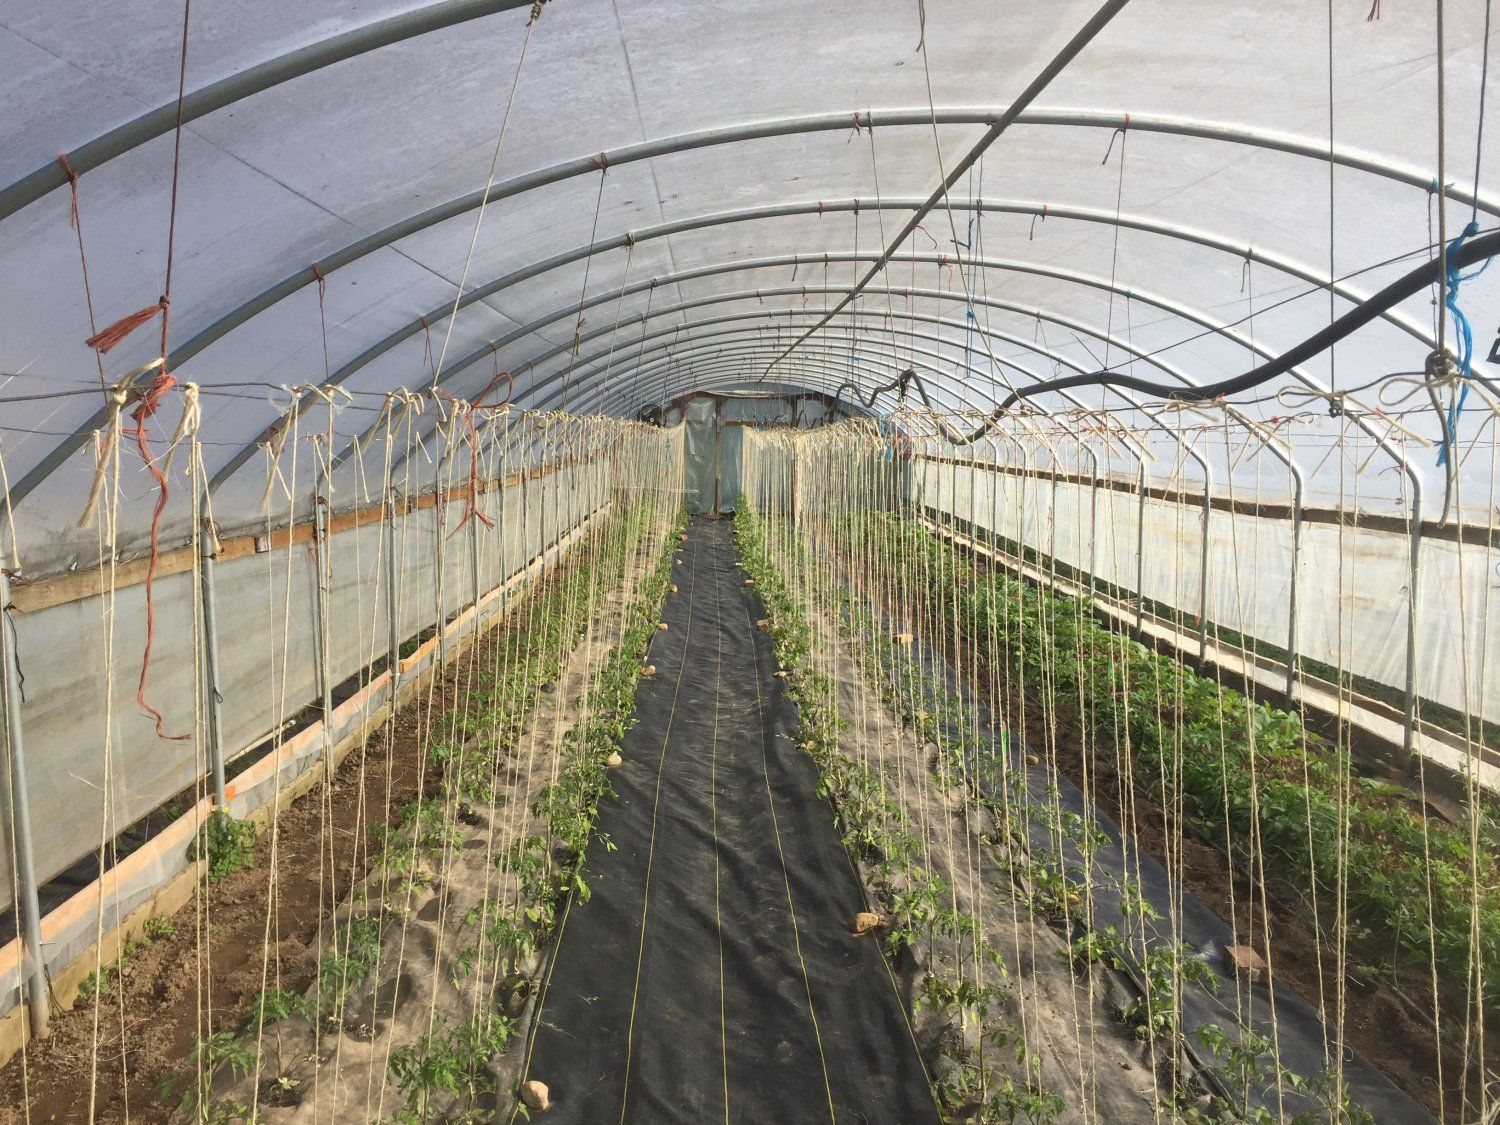 Farm Happenings for May 26, 2021